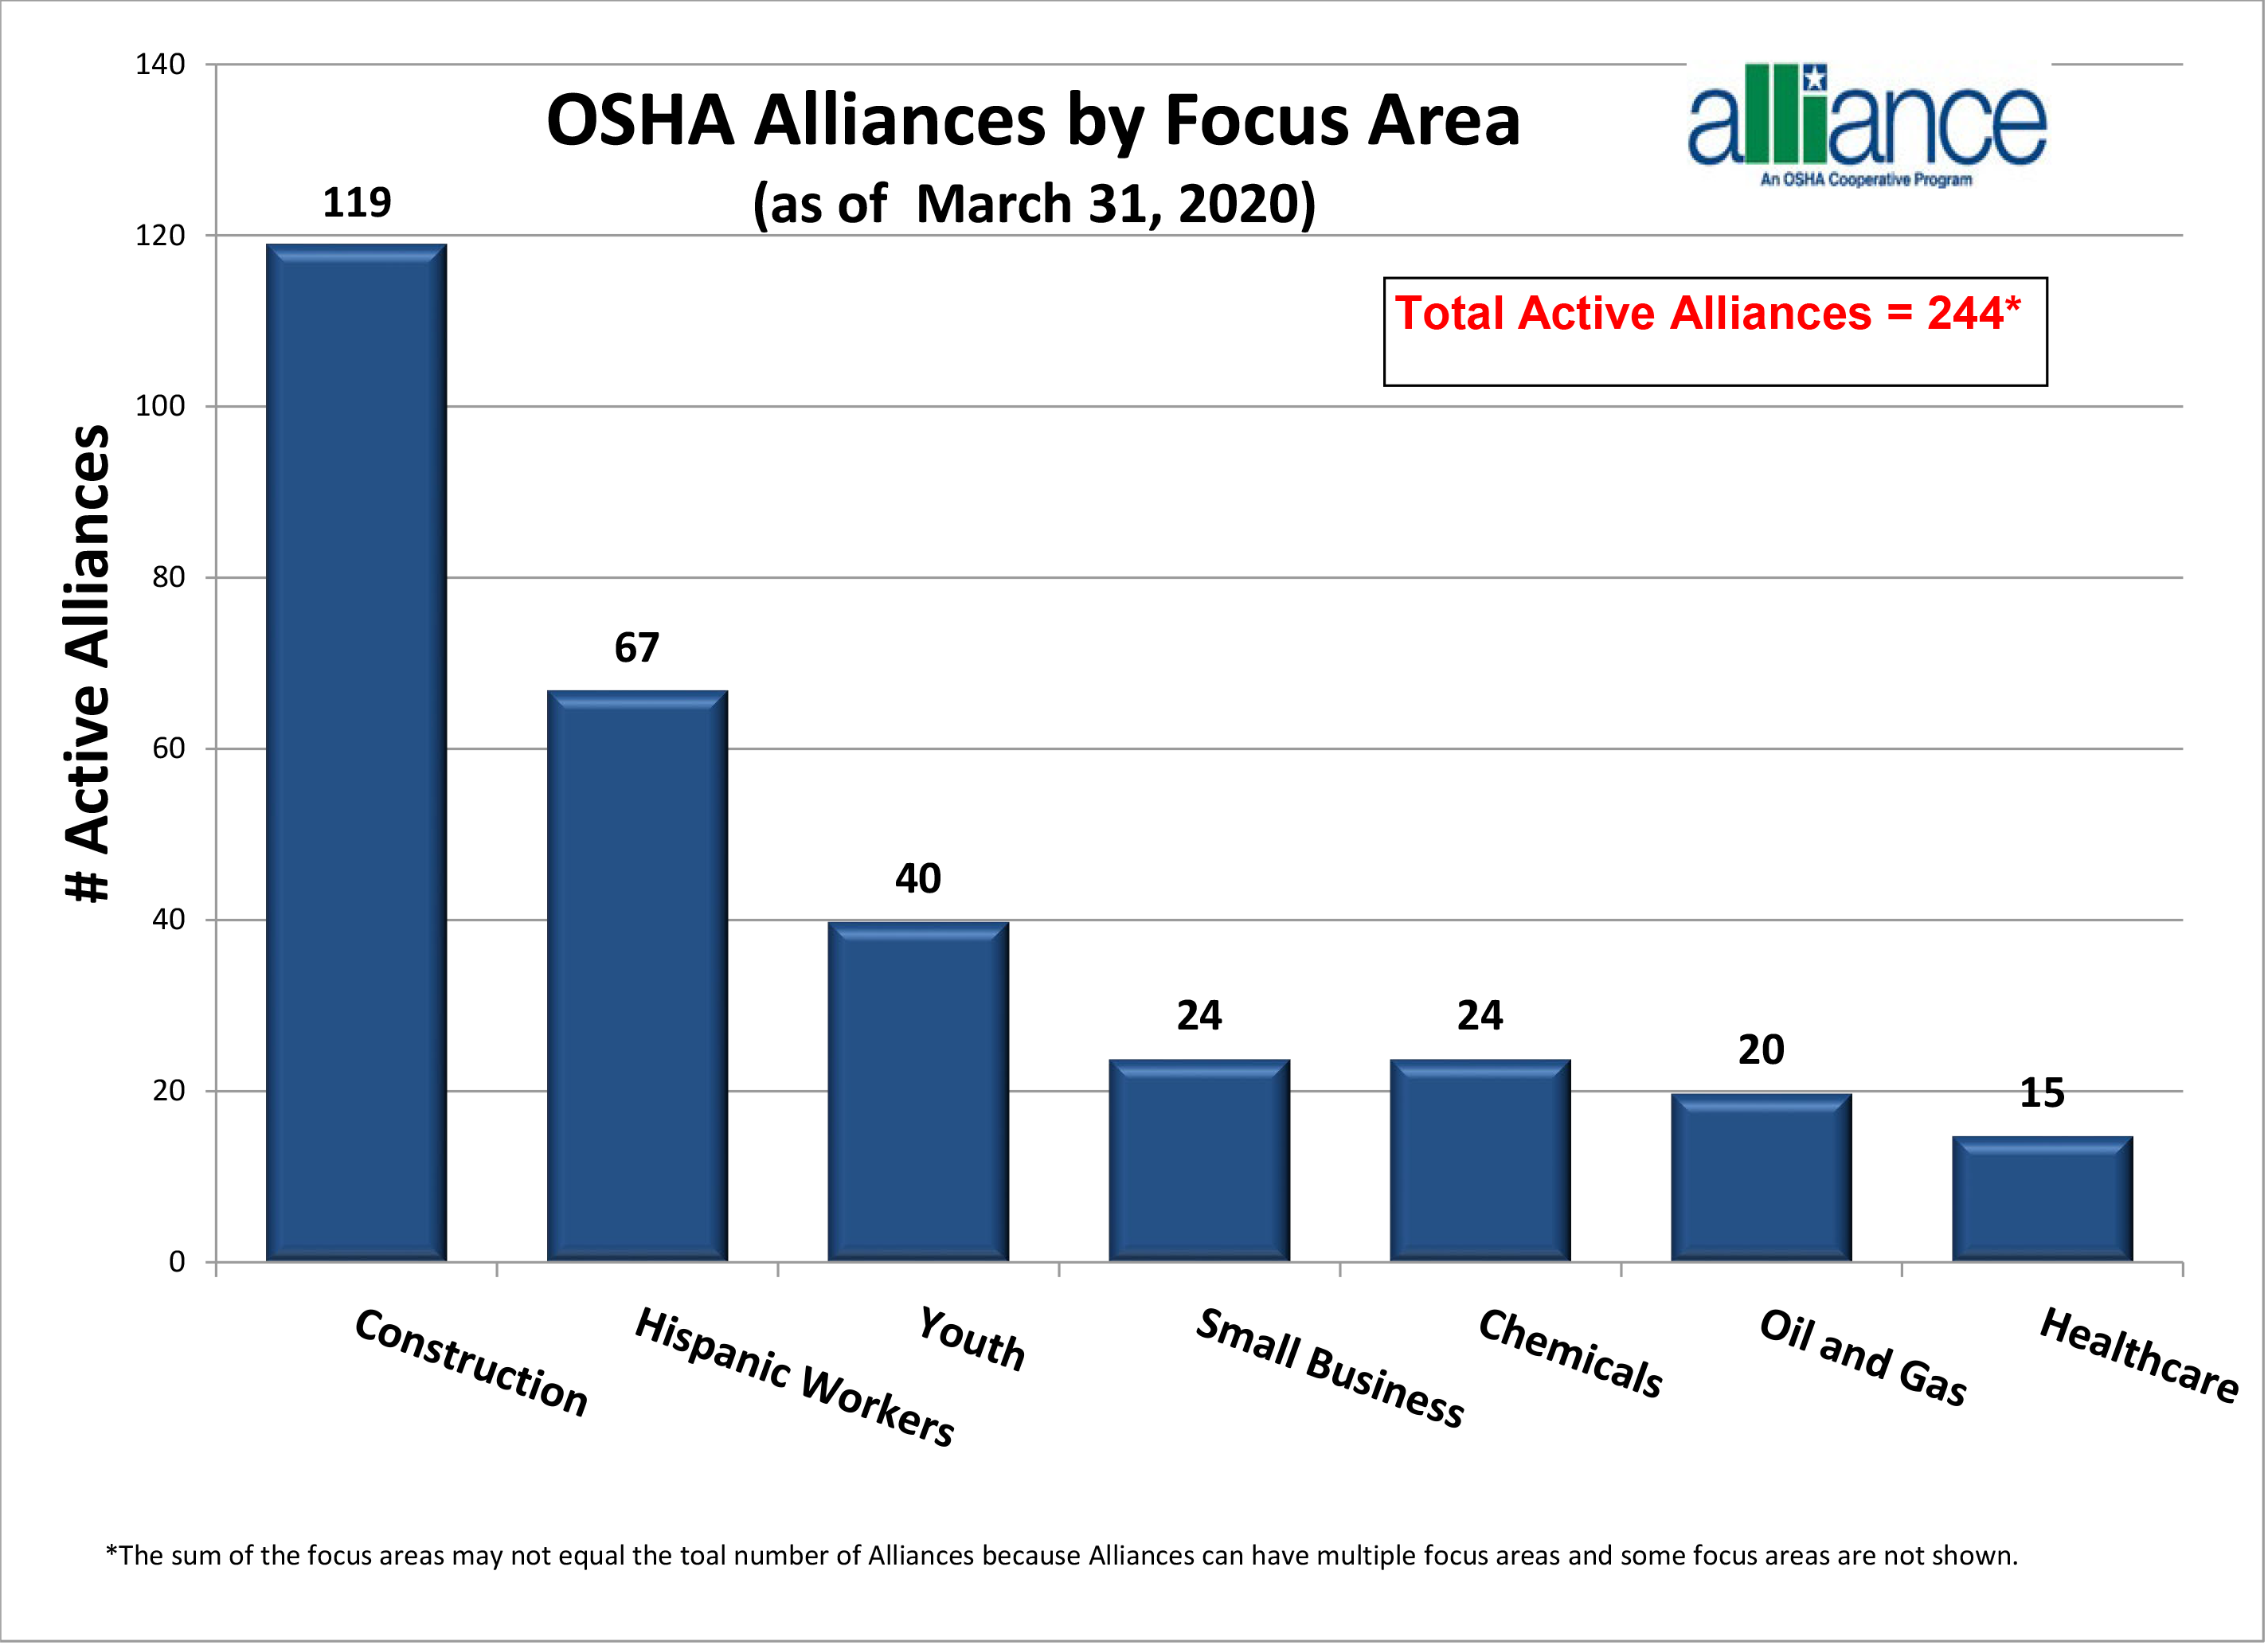 OSHA Alliances by Focus Area